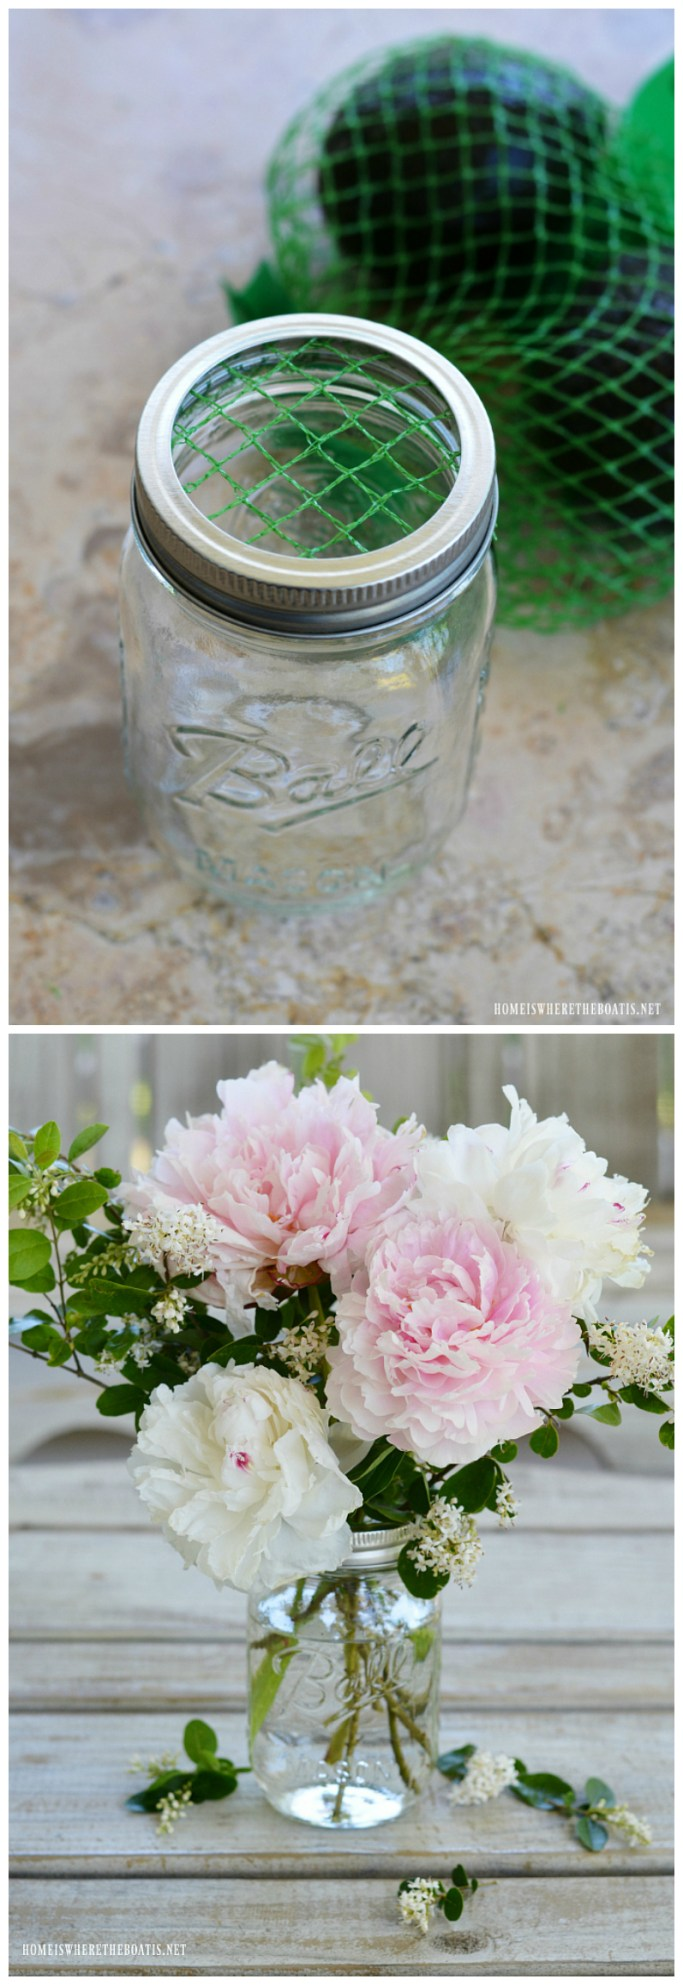 Recycled Flower Arranging Hack using plastic mesh bags from produce! | ©homeiswheretheboatis.net #masonjars #recycle #flowers #DIY